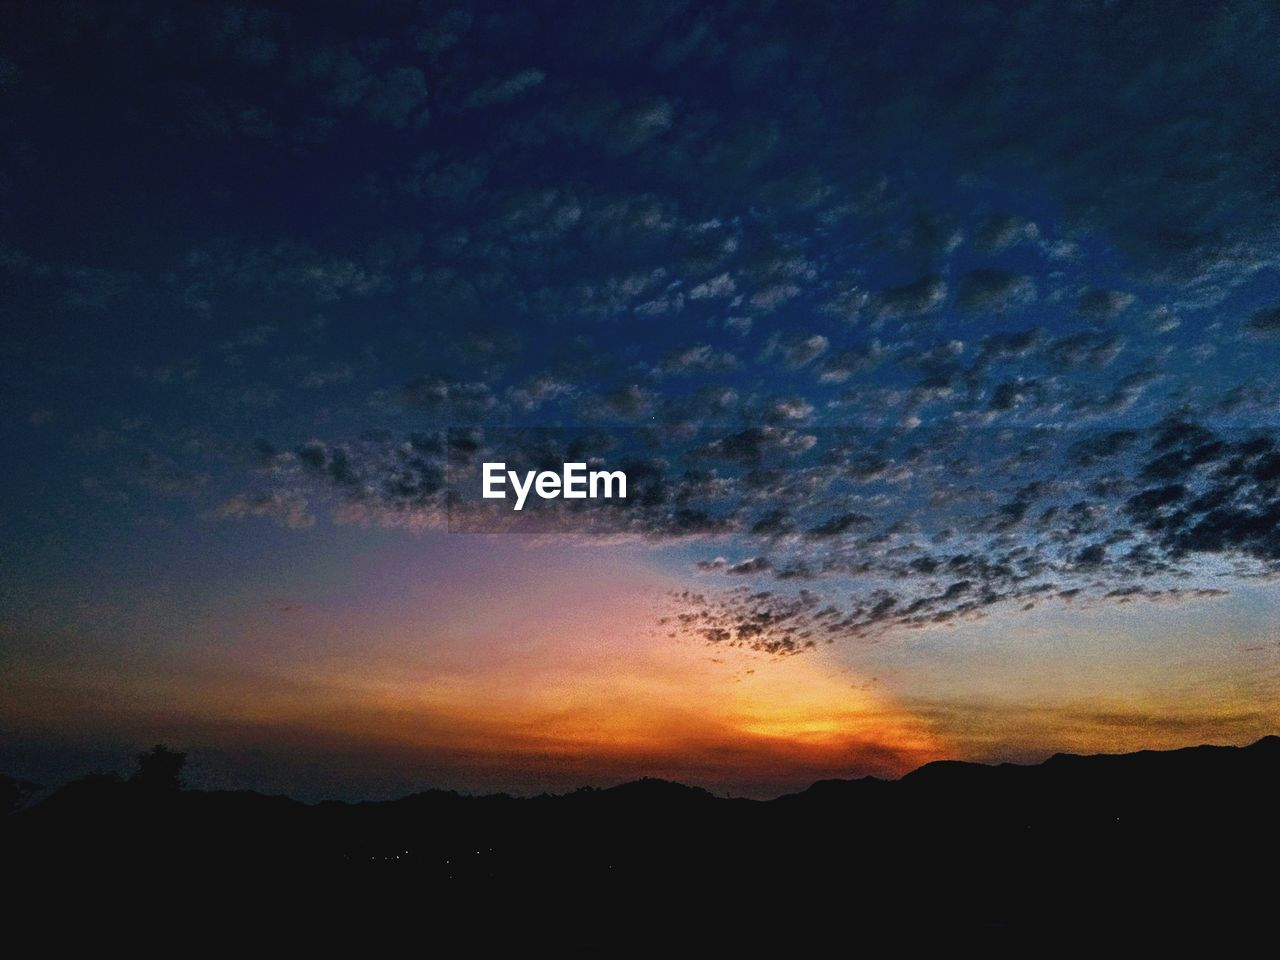 sky, sunset, beauty in nature, silhouette, cloud - sky, scenics - nature, tranquility, tranquil scene, idyllic, orange color, nature, no people, environment, landscape, dusk, dramatic sky, outdoors, low angle view, non-urban scene, mountain